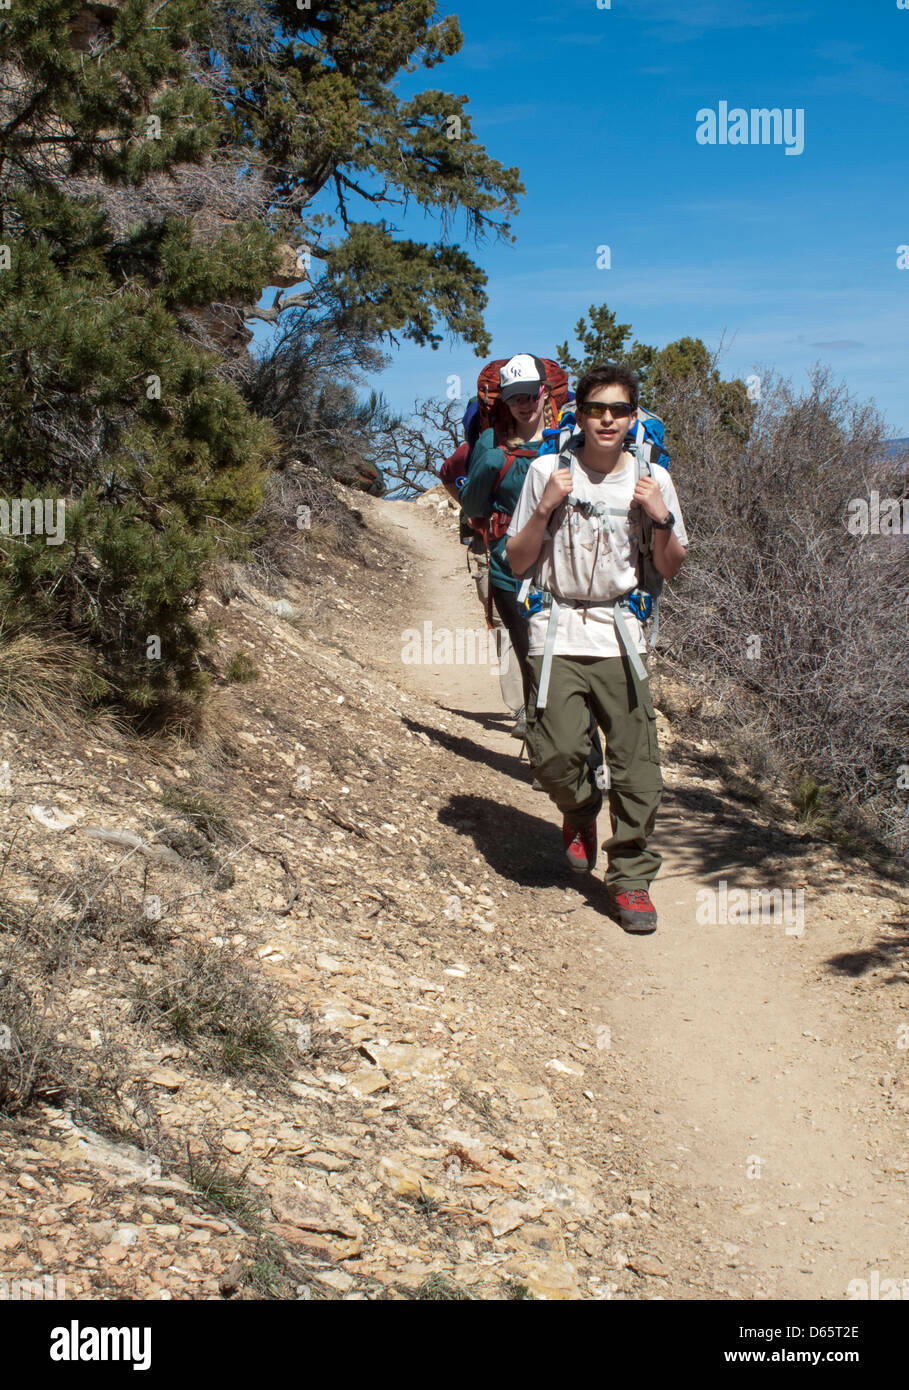 Grand Canyon National Park, Arizona - Joey West, 14, hikes on the Grandview Trail with his cousin, Mariel West, - Stock Image